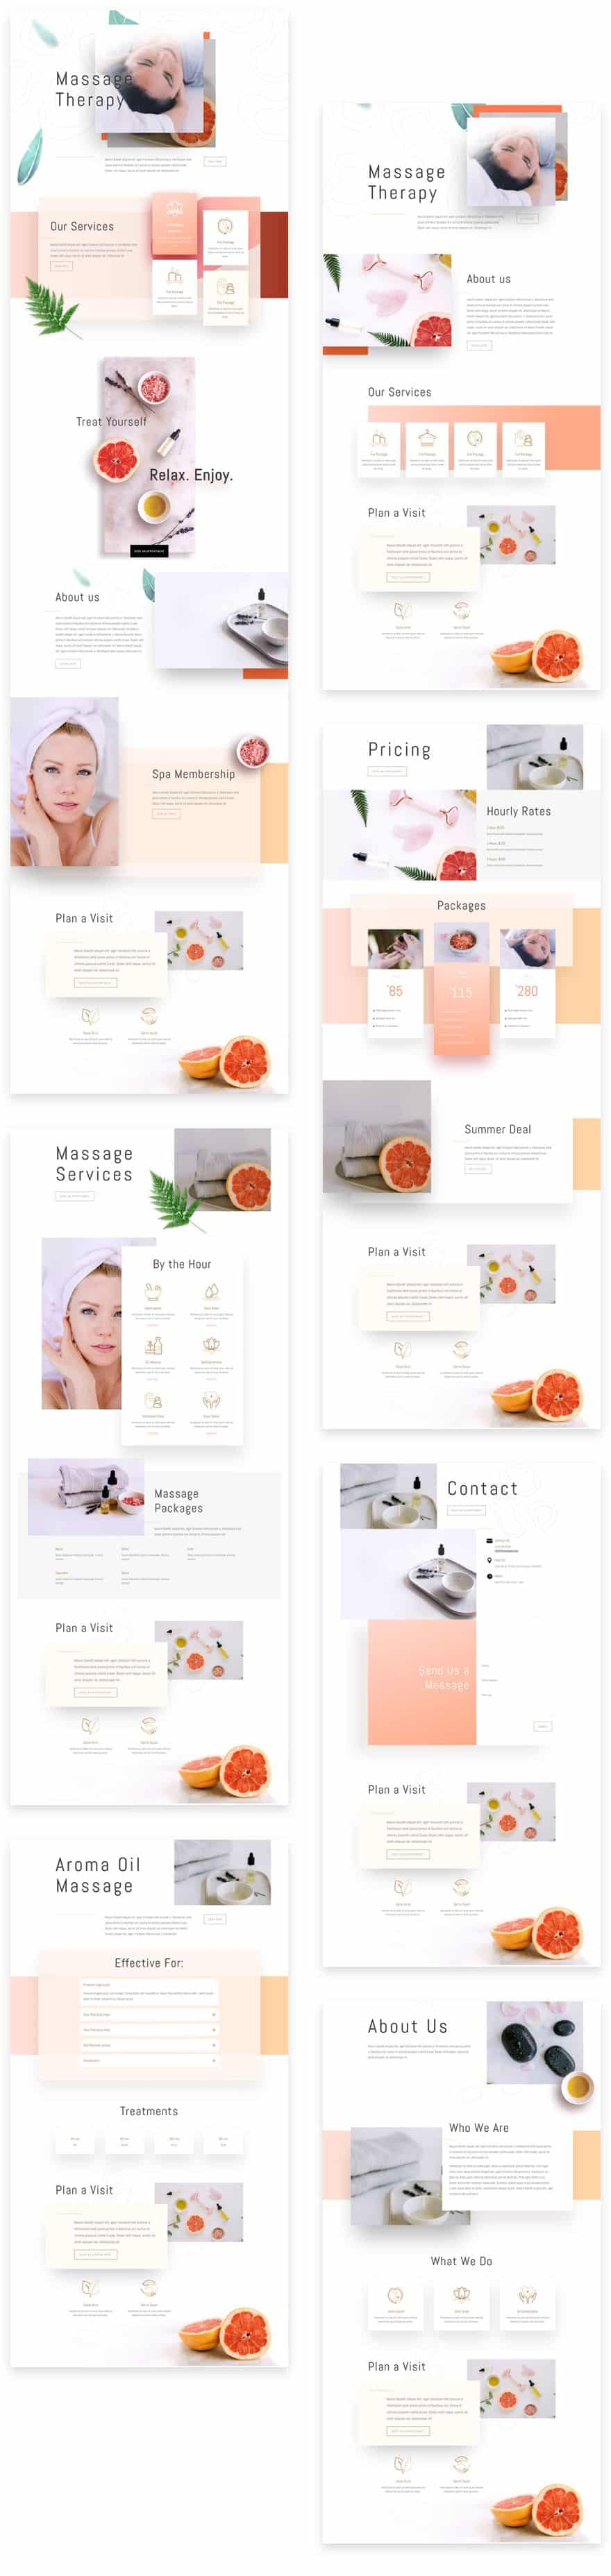 Massage Therapy Divi Layout Pack